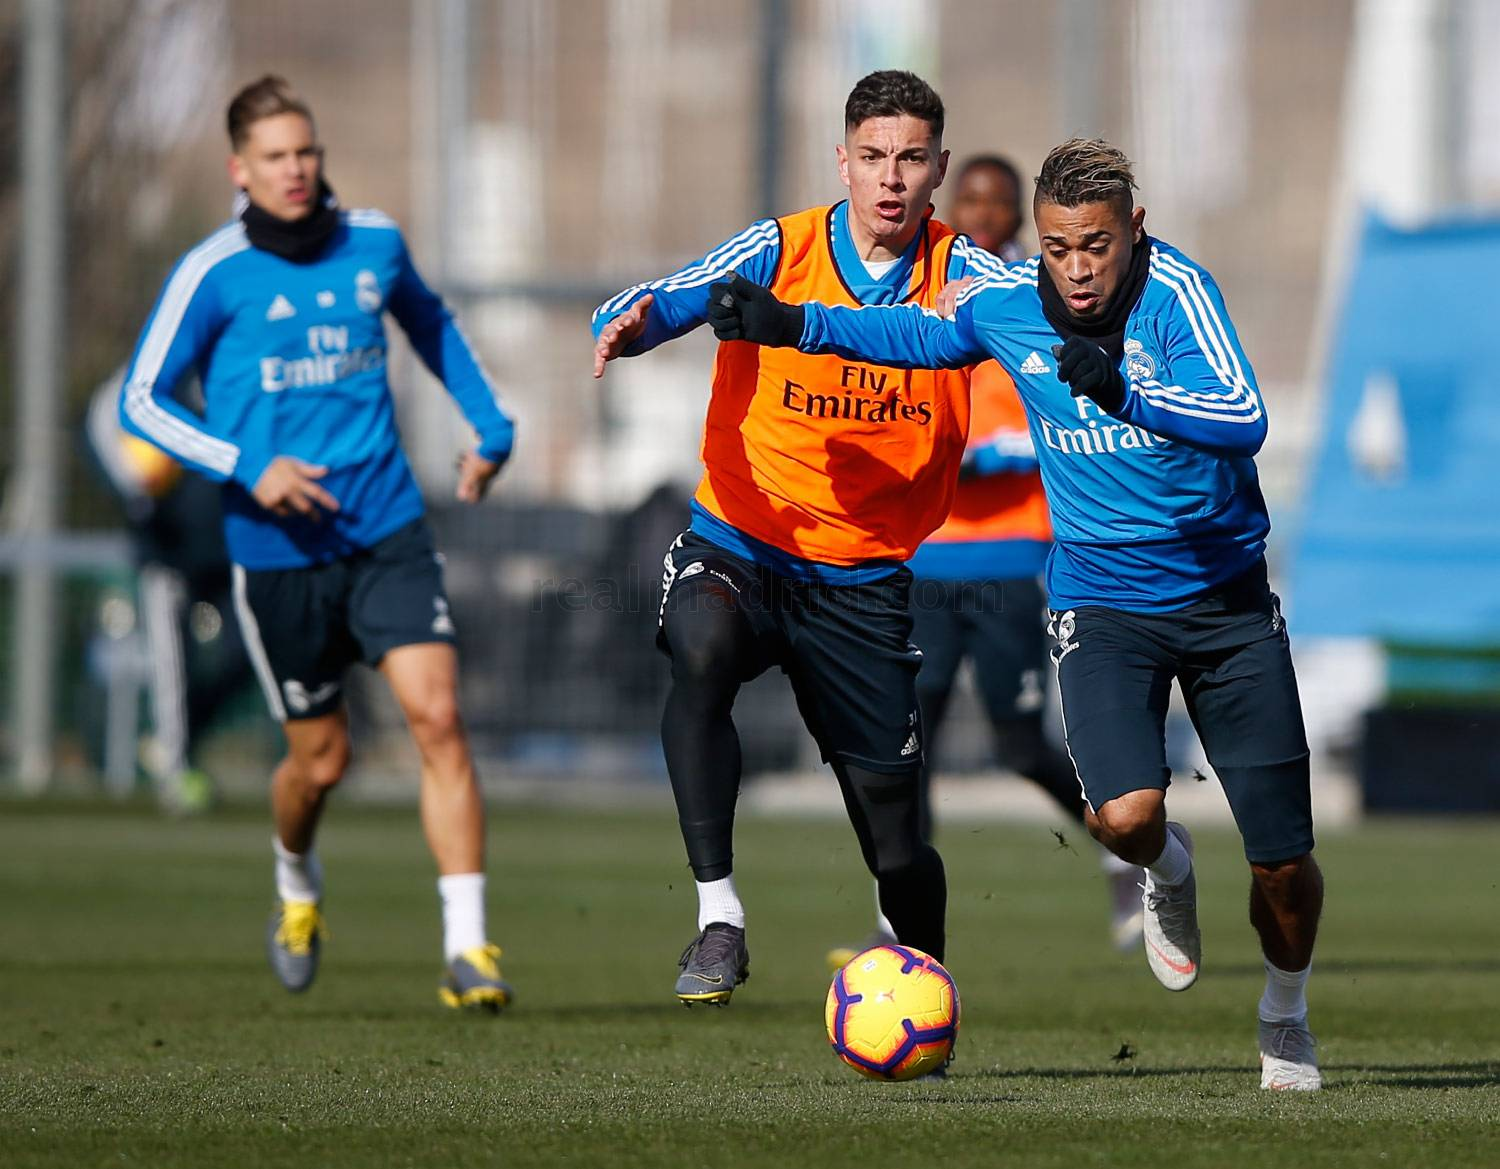 Real Madrid - Entrenamiento del Real Madrid - 02-02-2019